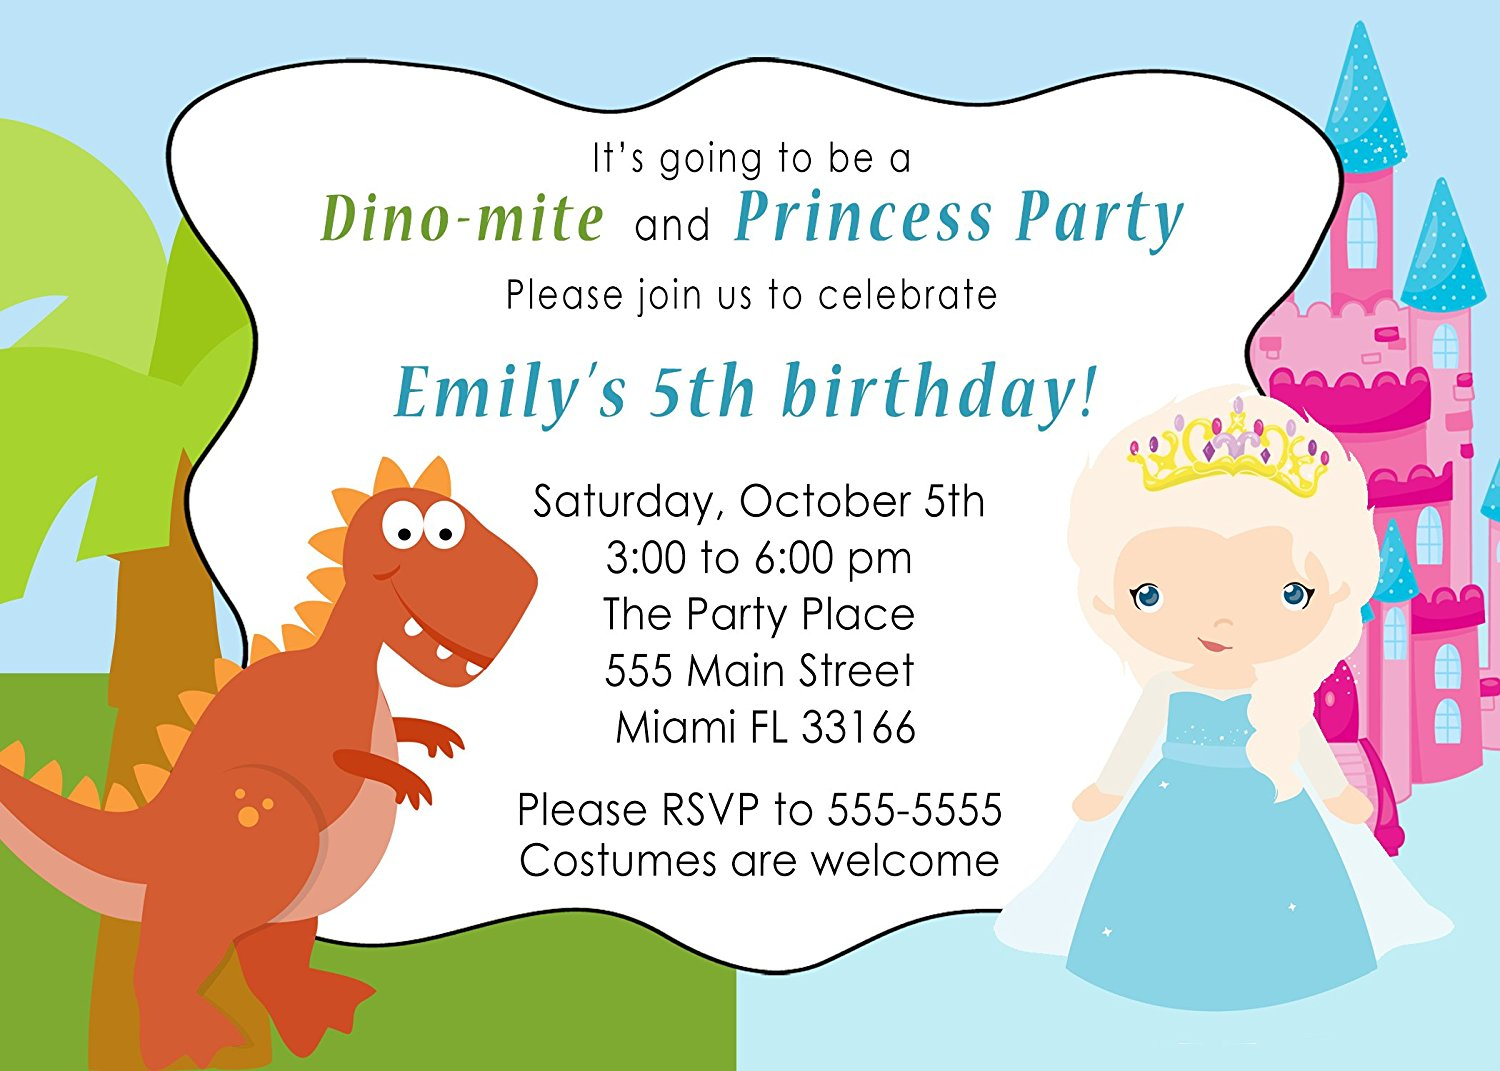 30 Invitations Dinosaur T Rex Winter Princess Girl Boy Birthday Party Personalized Cards Photo Paper